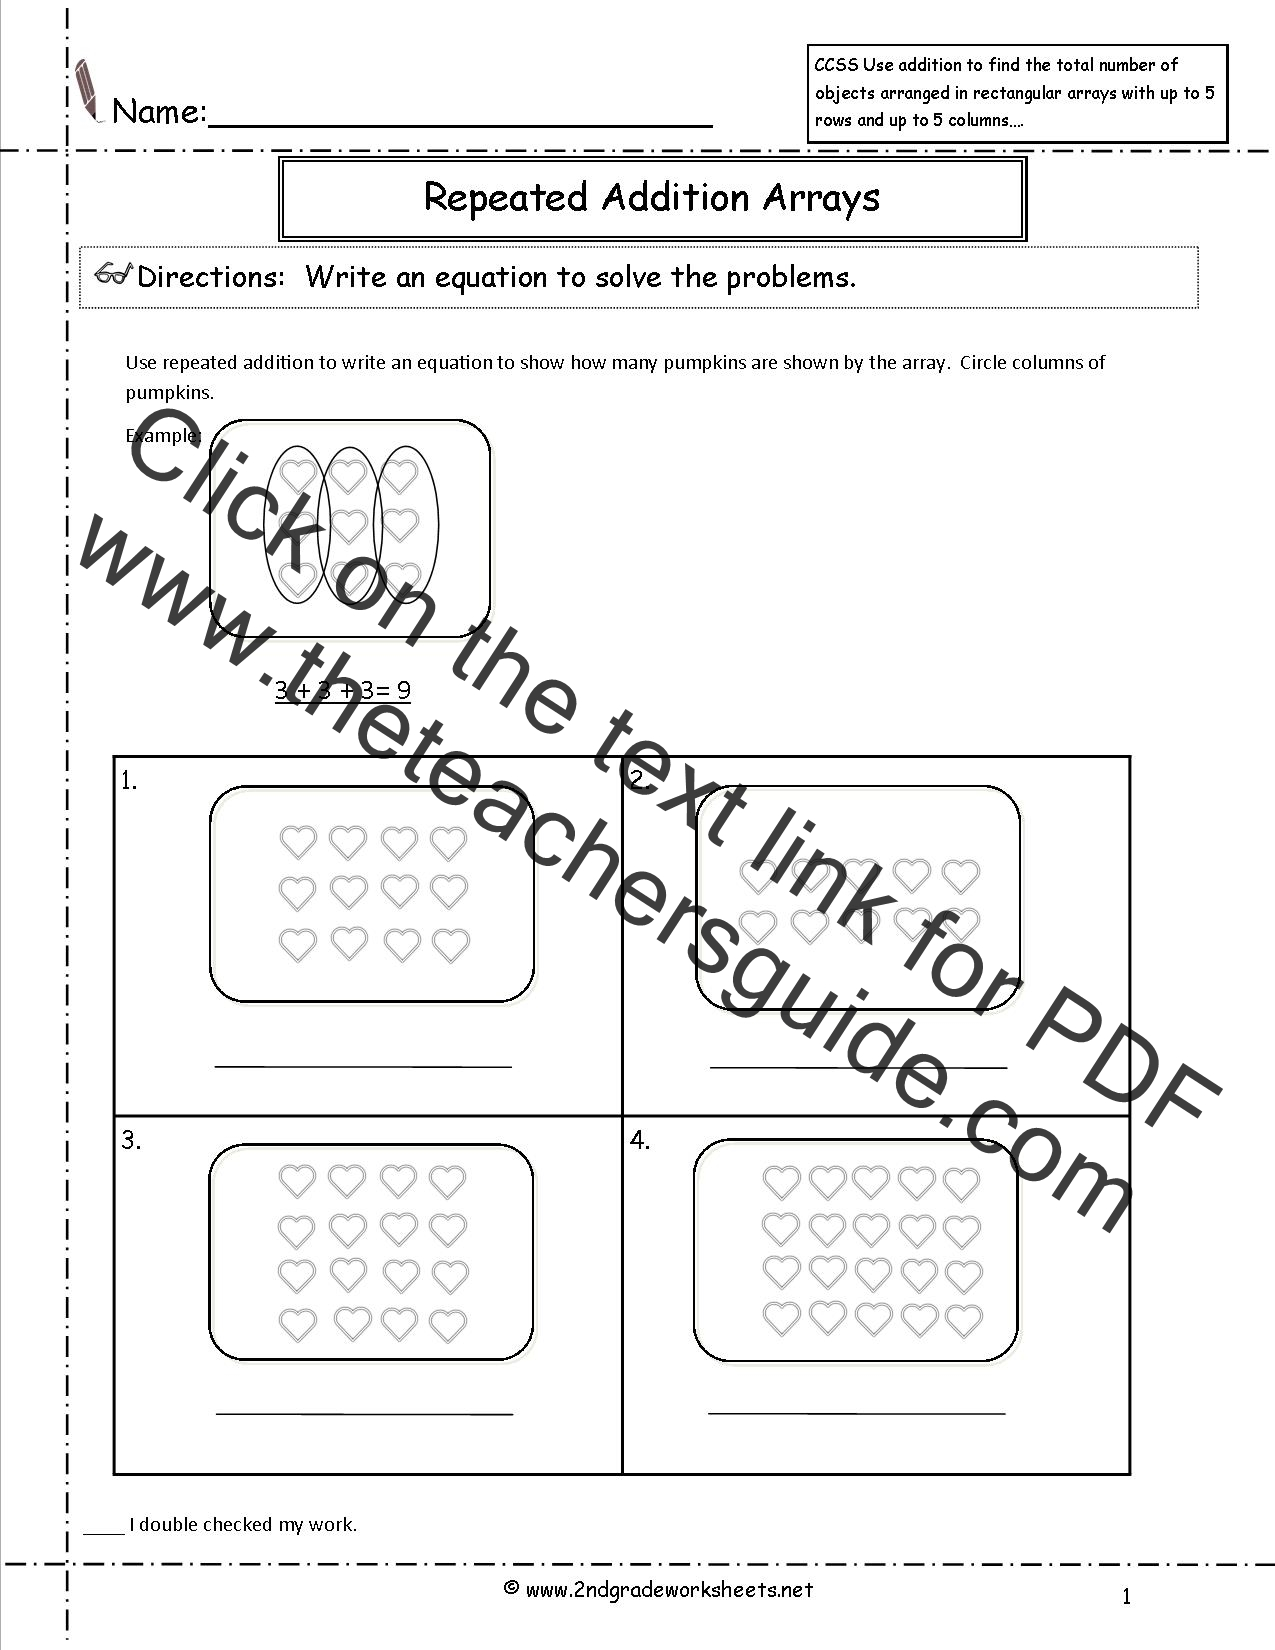 CCSS 2OA4 Worksheets – Repeated Addition Worksheets for 2nd Grade